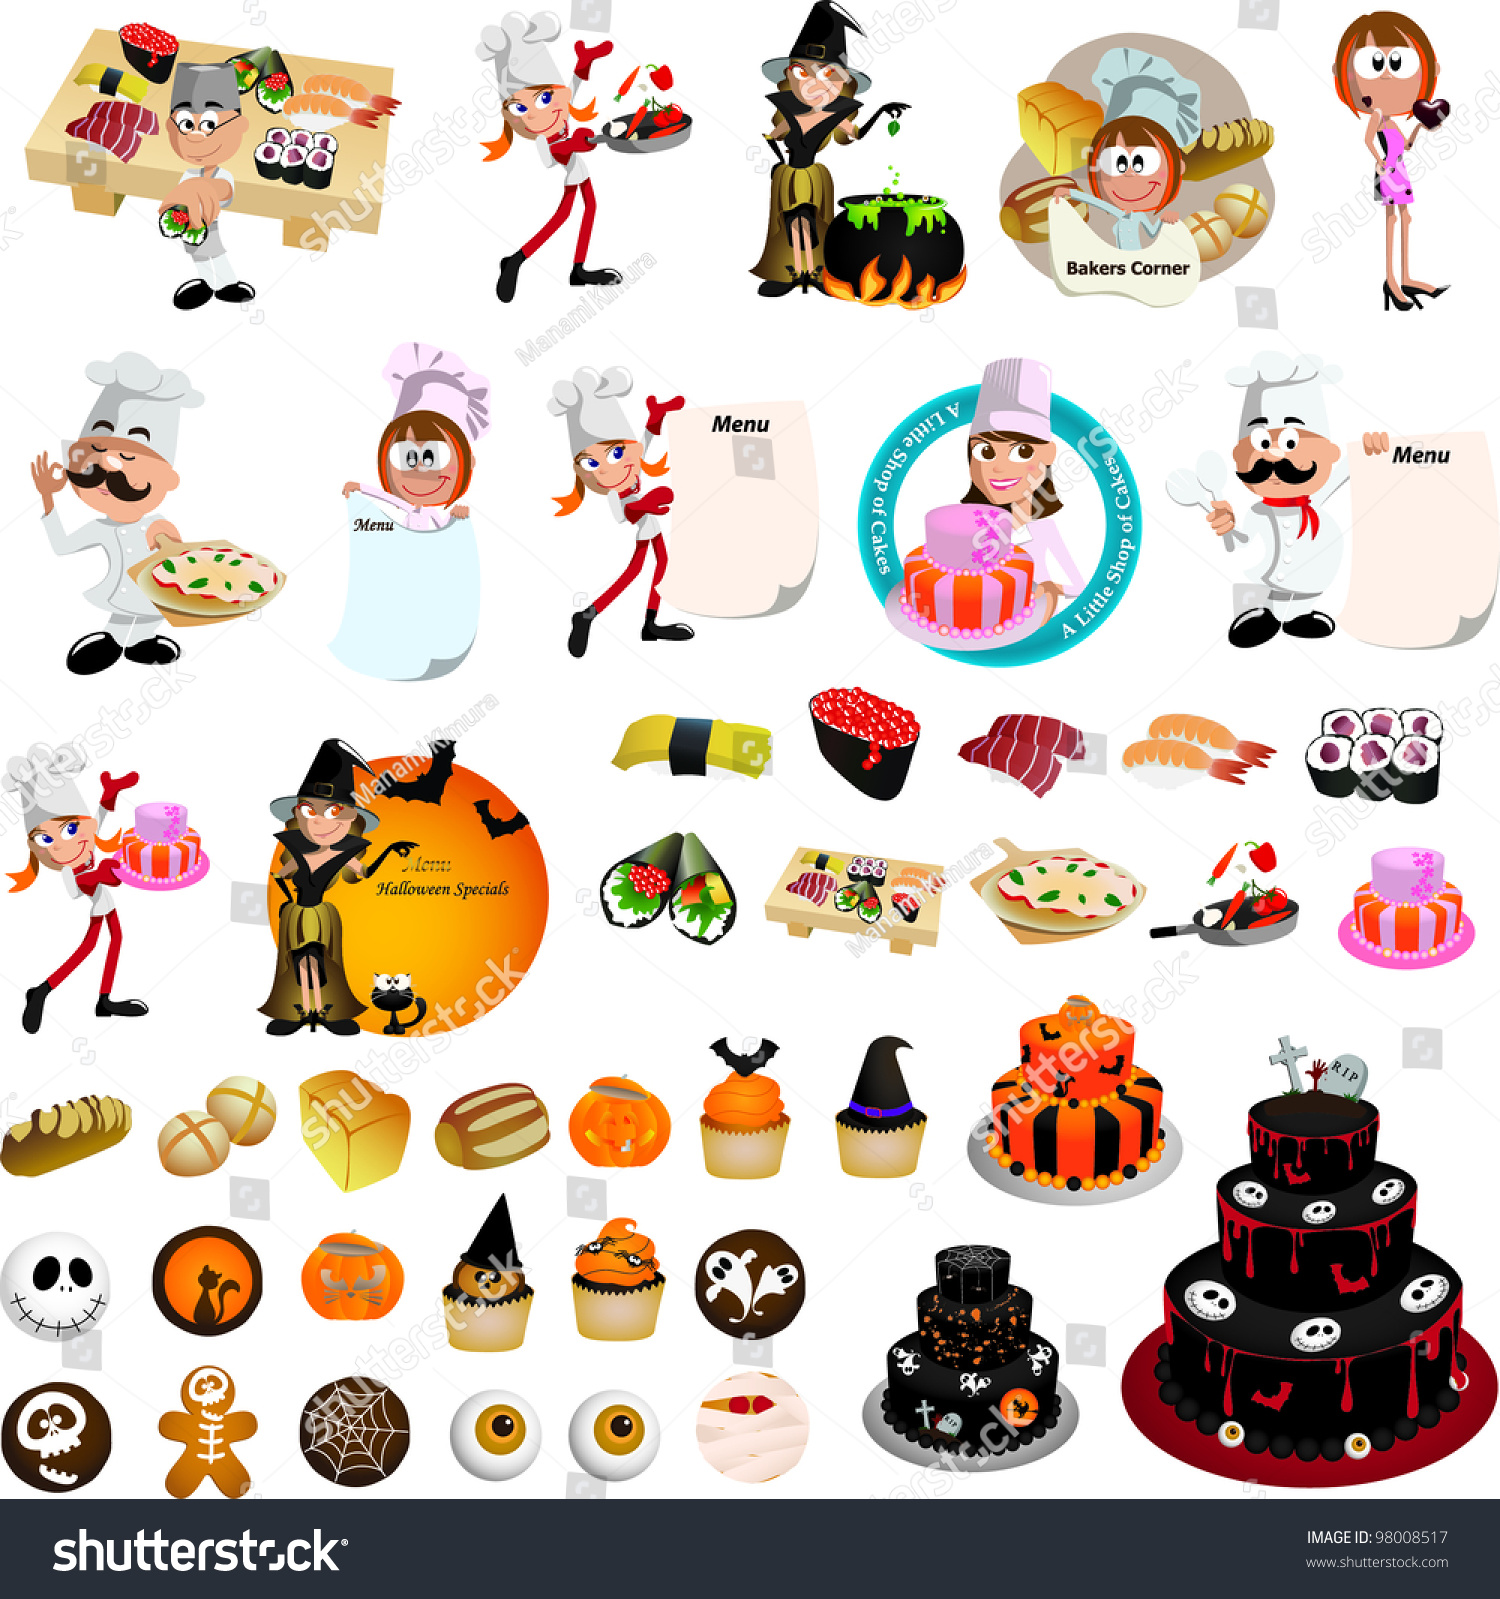 For restaurant pictures graphics illustrations clipart photos - Restaurant Cooking Graphic Design Elements For Menu Wallpaper Vector